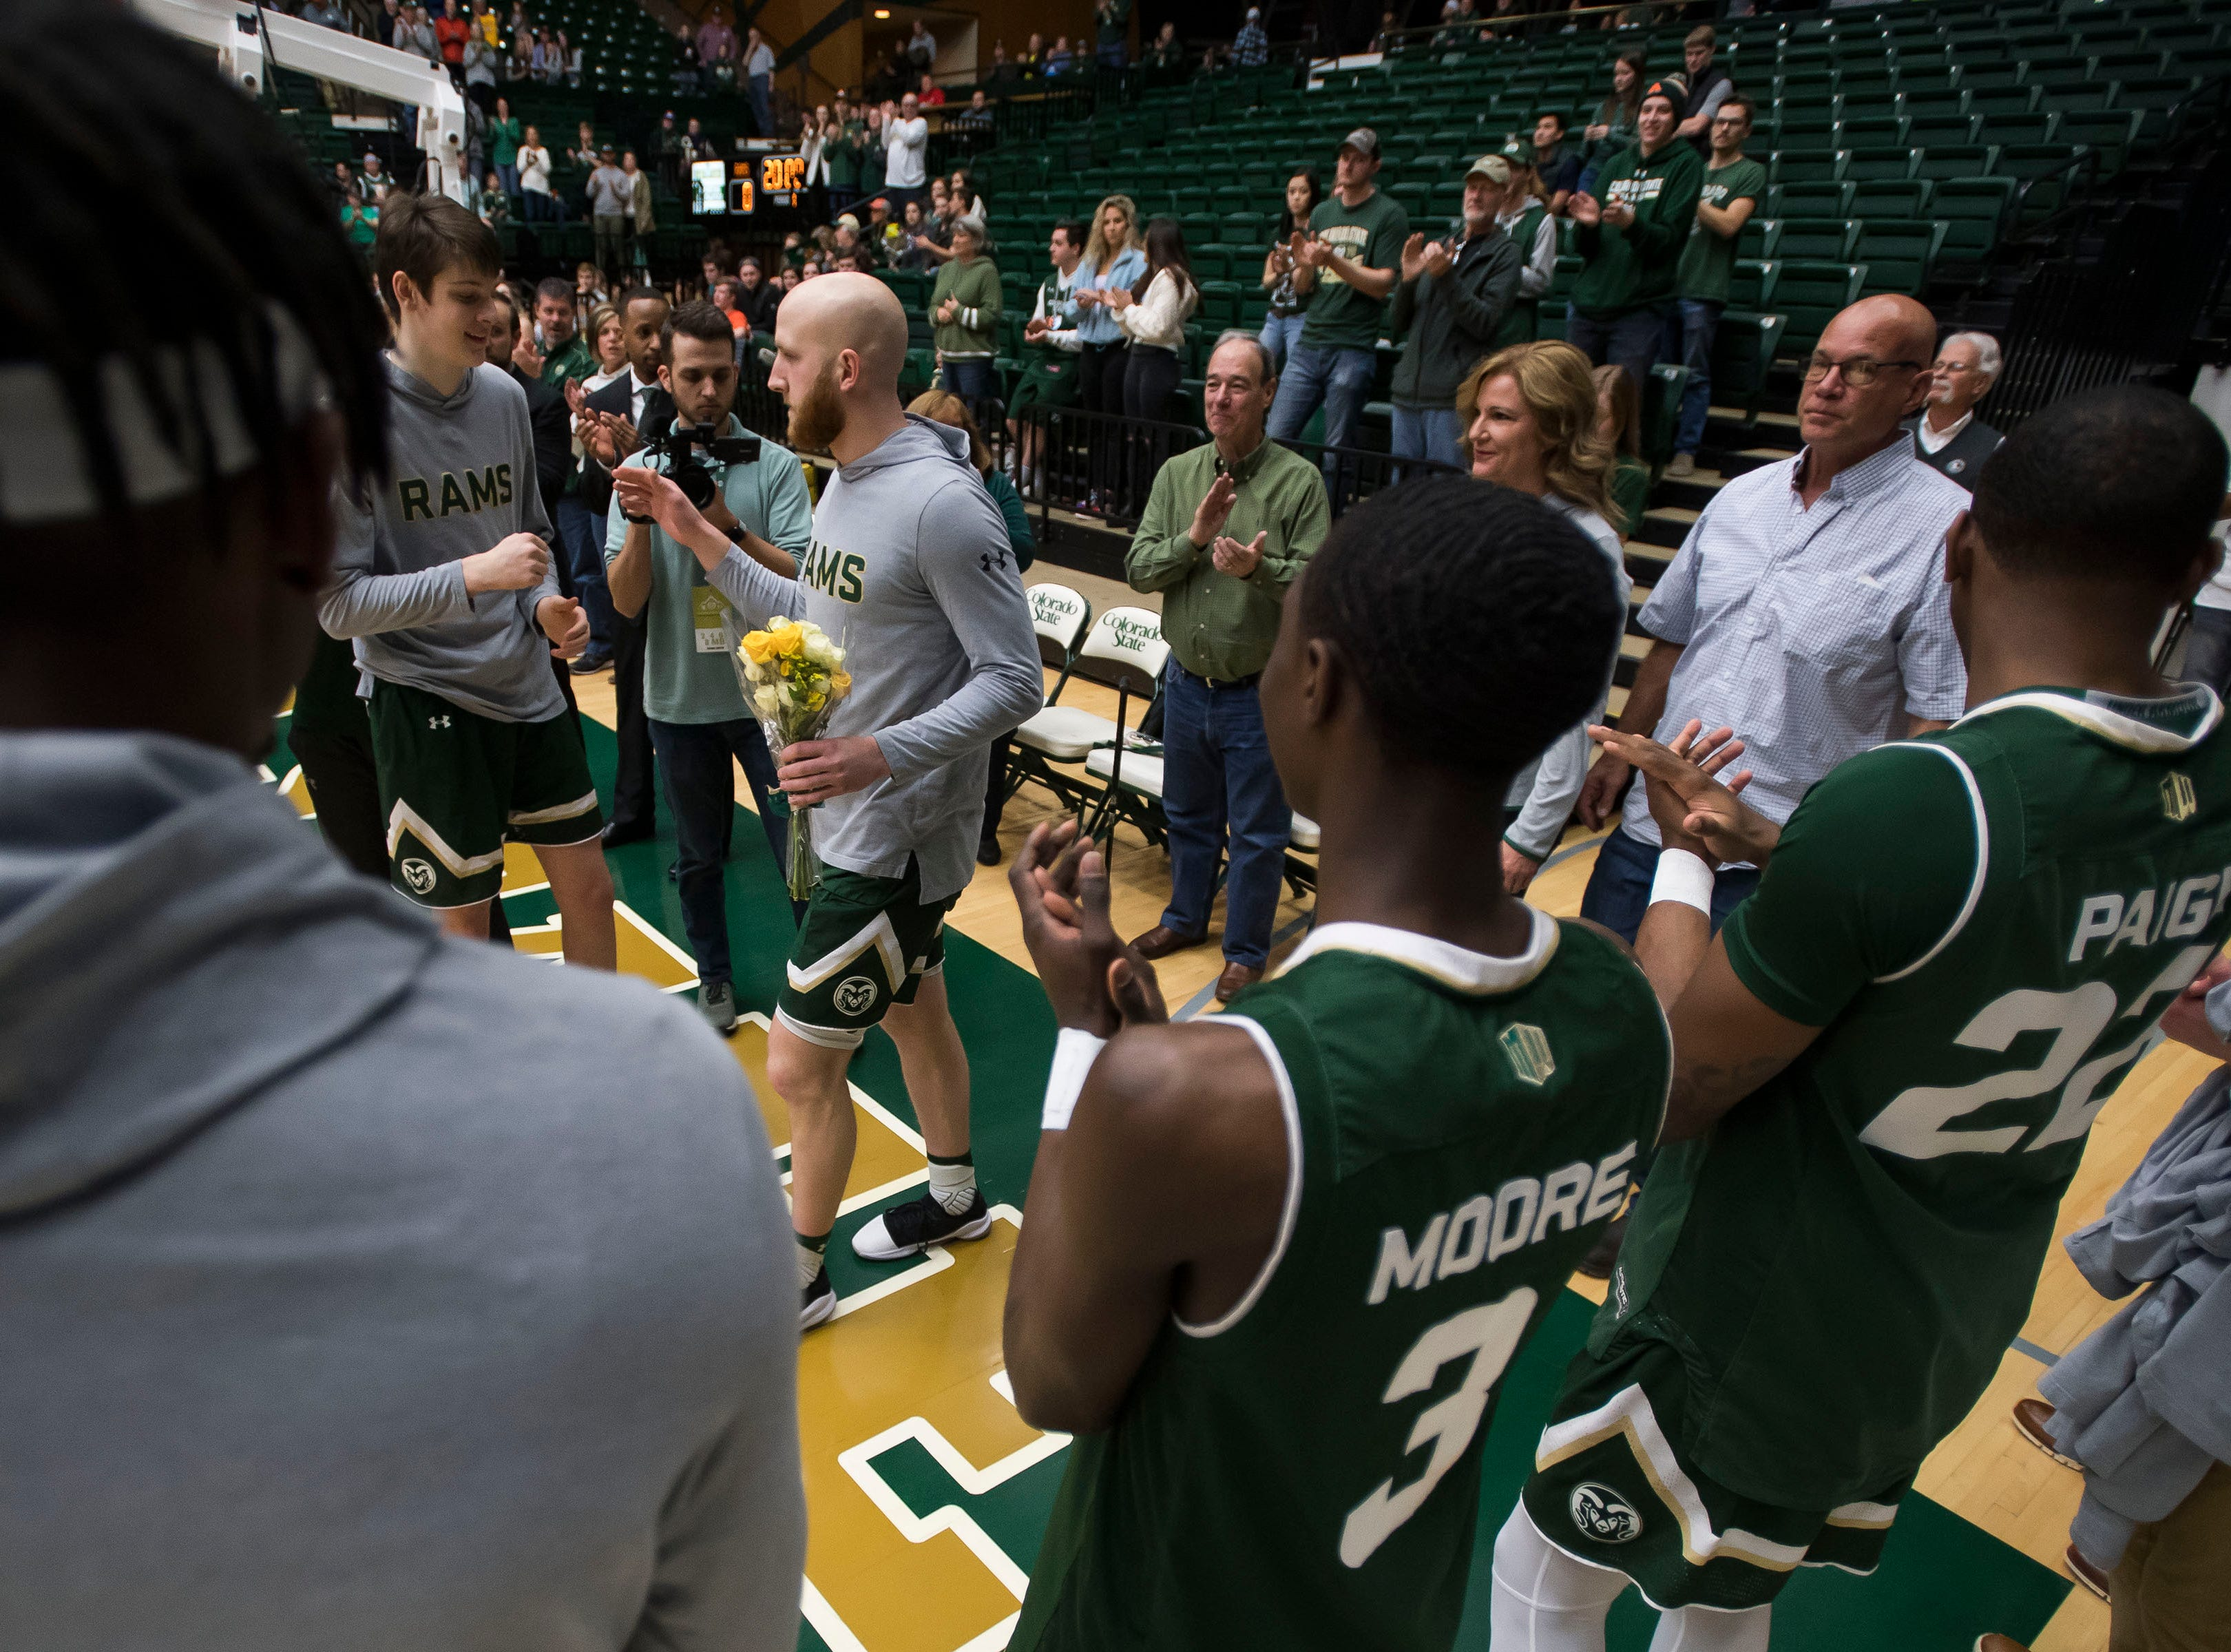 Colorado State University senior guar Robbie Berwick (14) is honored before a game against University of Nevada, Las Vegas on Saturday, March 9, 2019, at Moby Arena in Fort Collins, Colo.